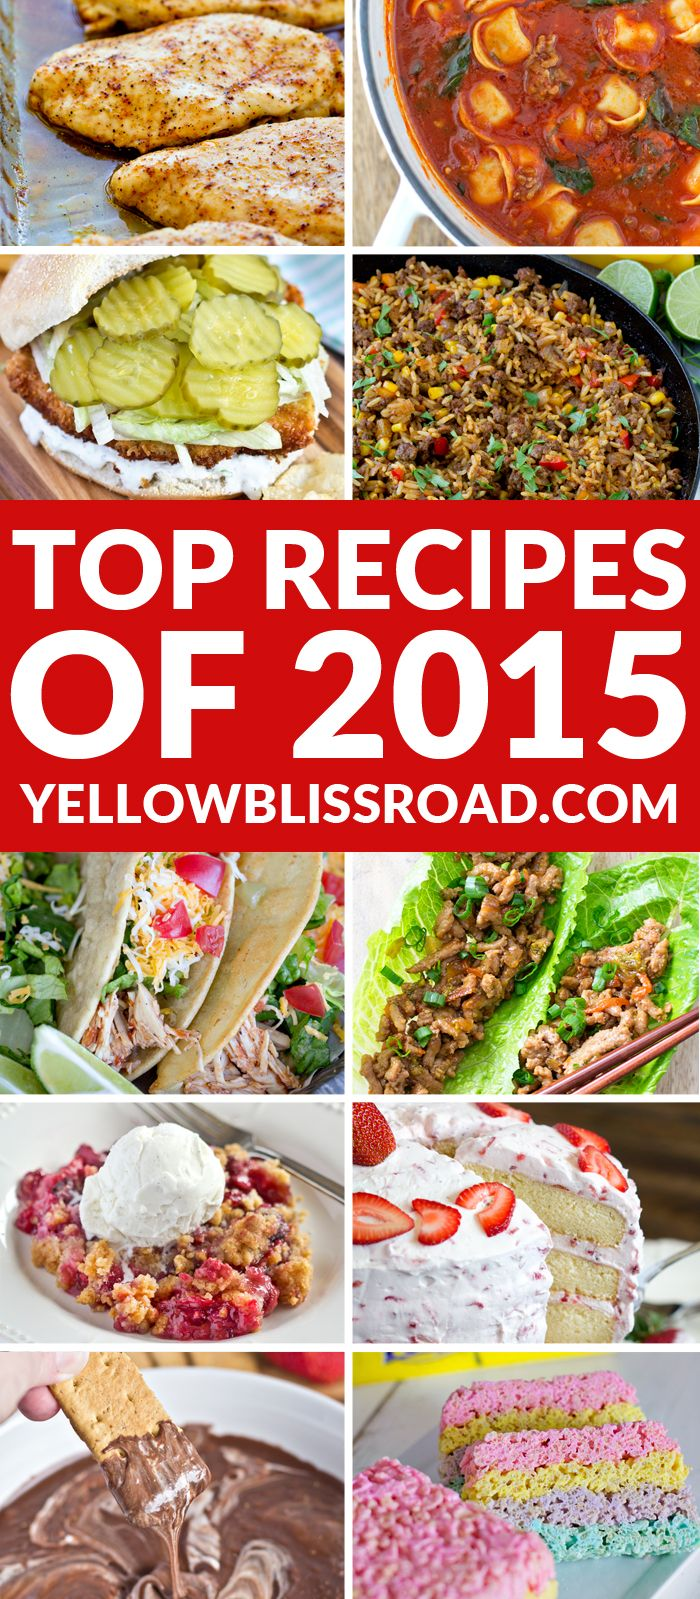 Top Recipes of 2015 from Yellow Bliss Road - Delicious dinner, appetizer, soup and dessert recipes